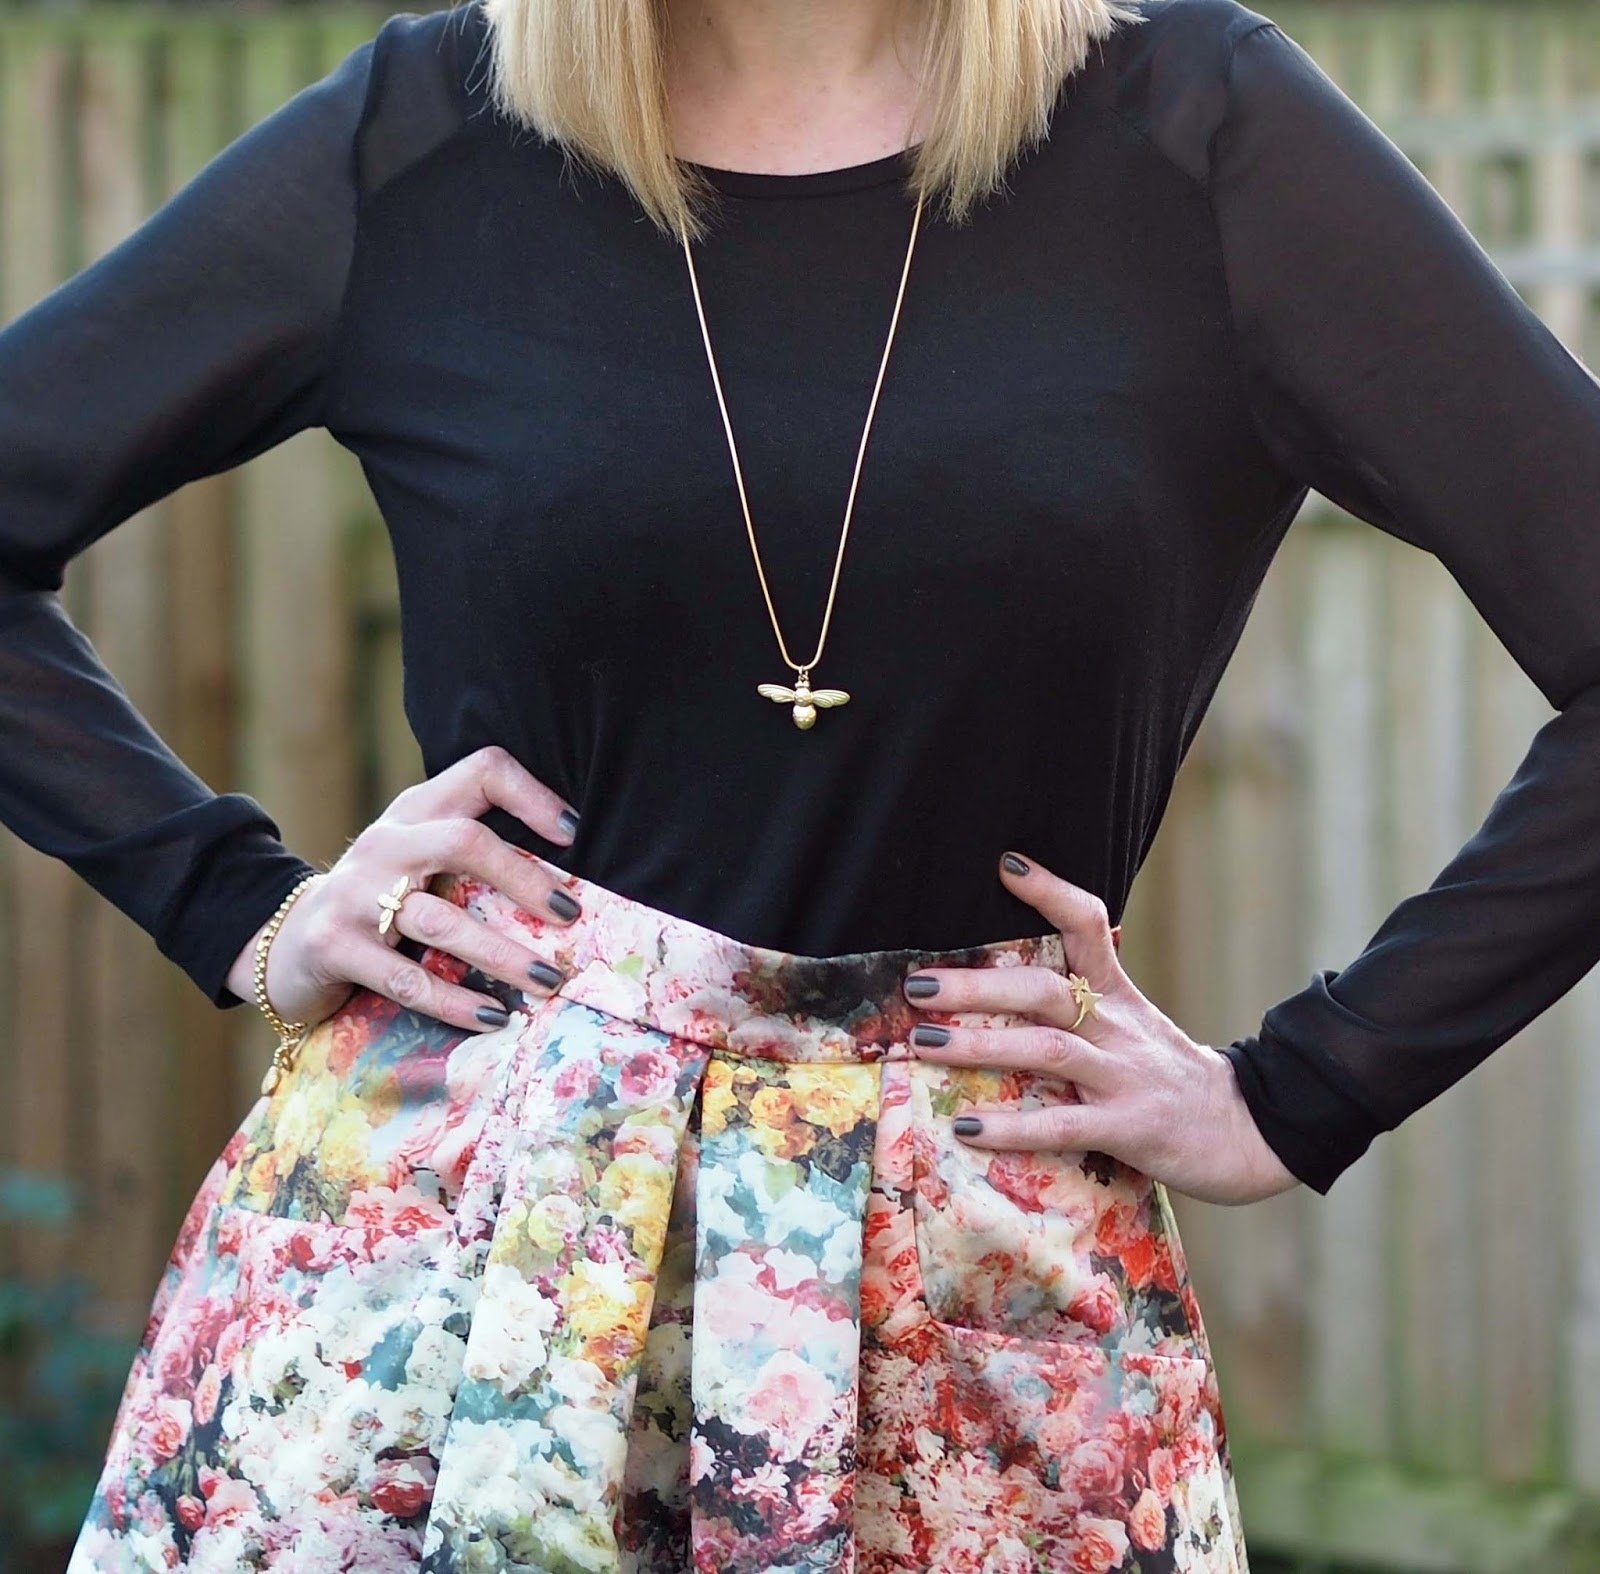 satin floral midi skirt with leopard print boots, over 40 style, Danon gold honey bee necklace